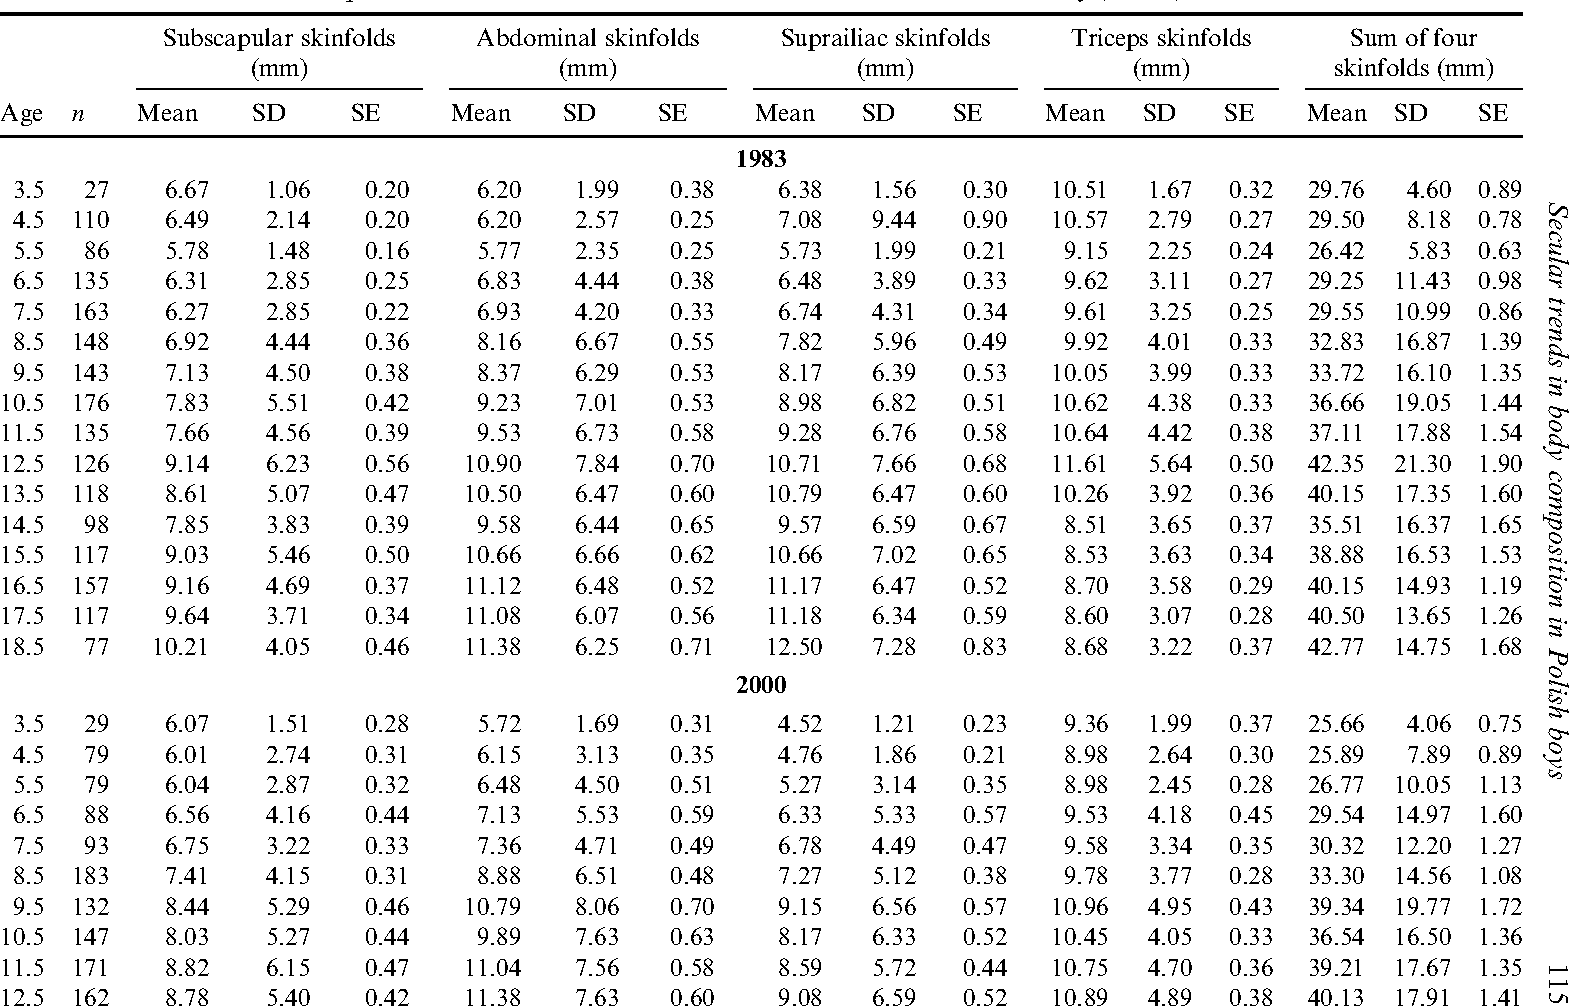 Table 1. Descriptive statistics of four skinfolds and their sum for Krakow boys, 1983, 2000 and 2010